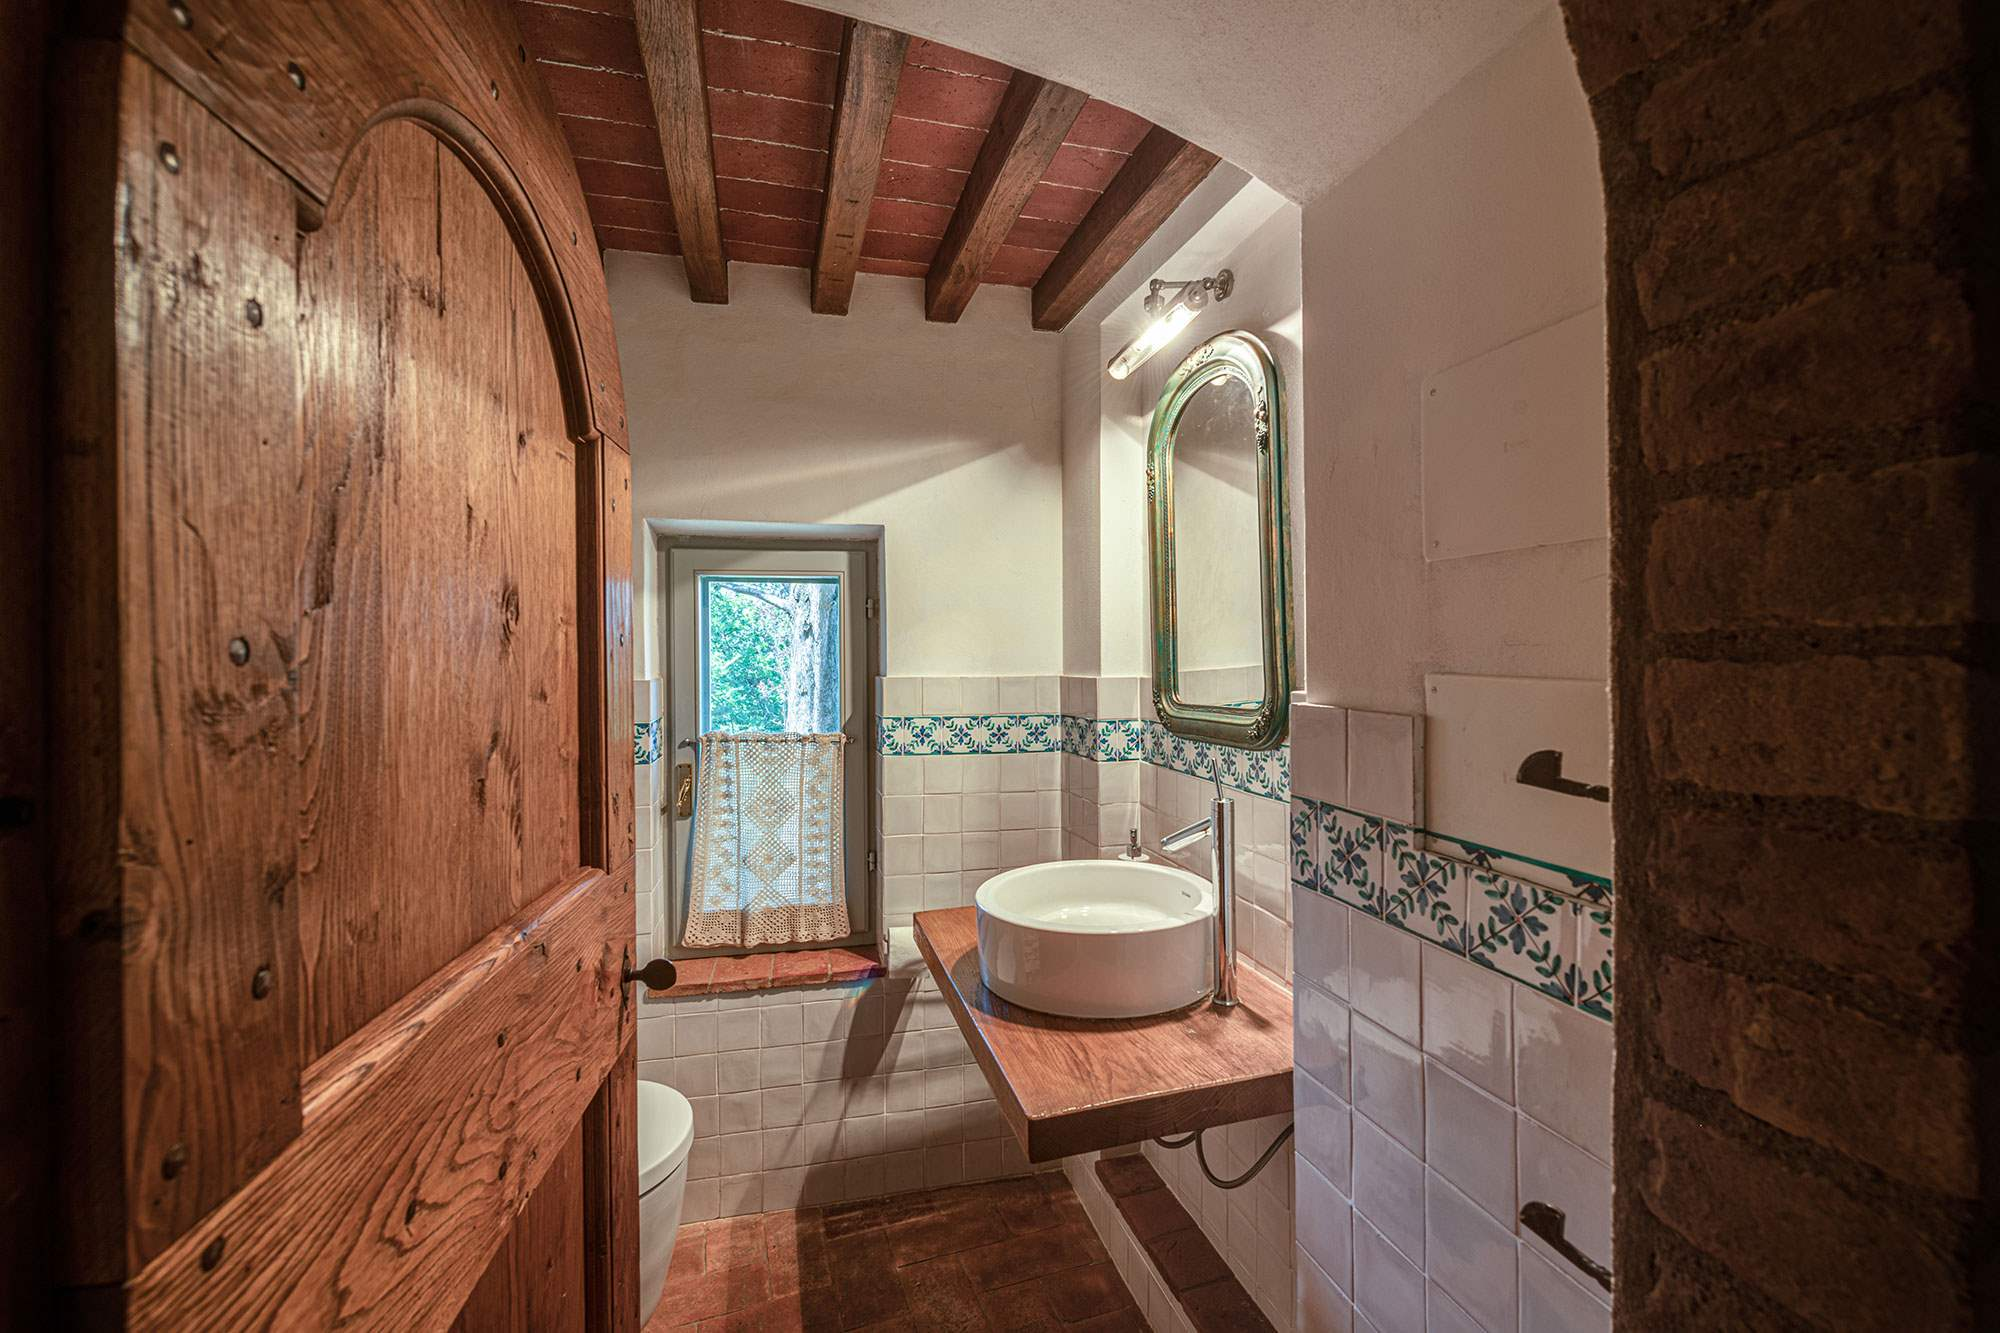 Villa Claudia, 5 Bedroom rate, 5 bedroom villa in Chianti & Countryside, Tuscany Photo #27